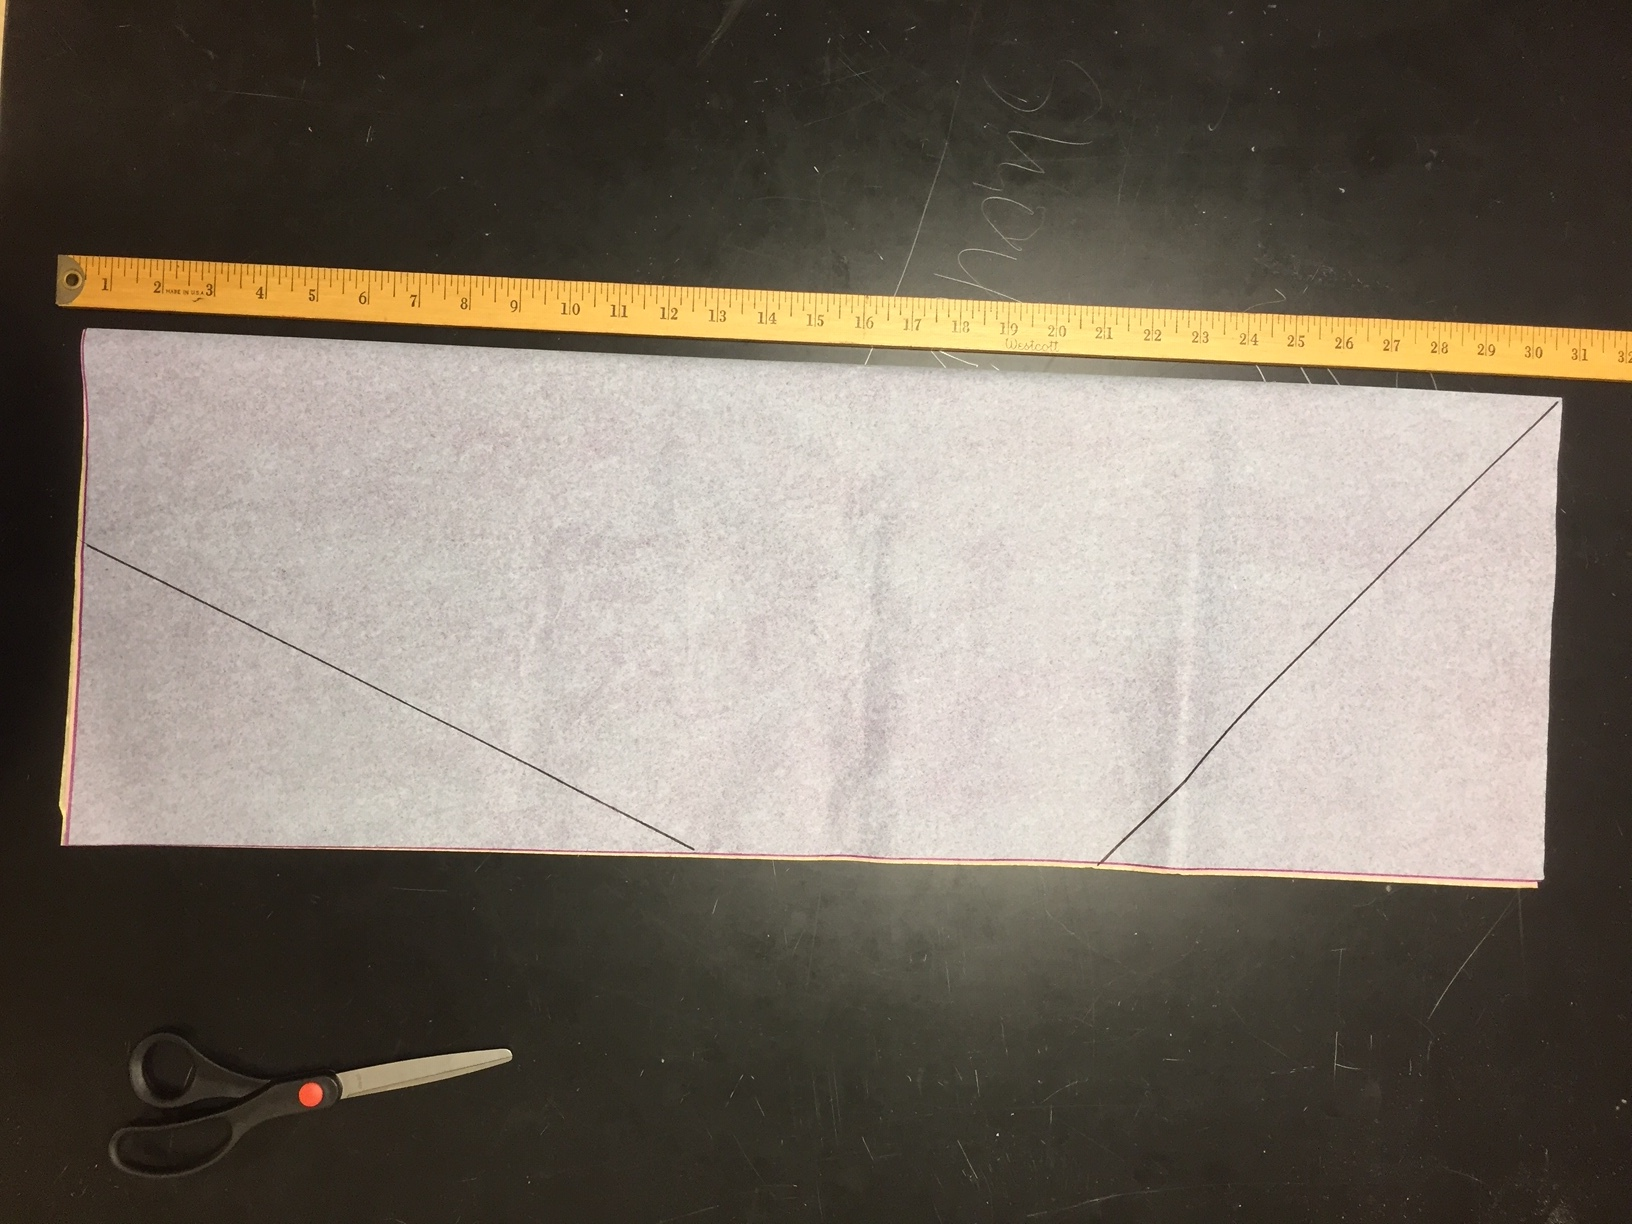 Fold four 20 x 30 sheets of tissue paper lengthwise. Mark cut lines as shown.    Make sure one cut line goes all the way to the fold and the other does not.